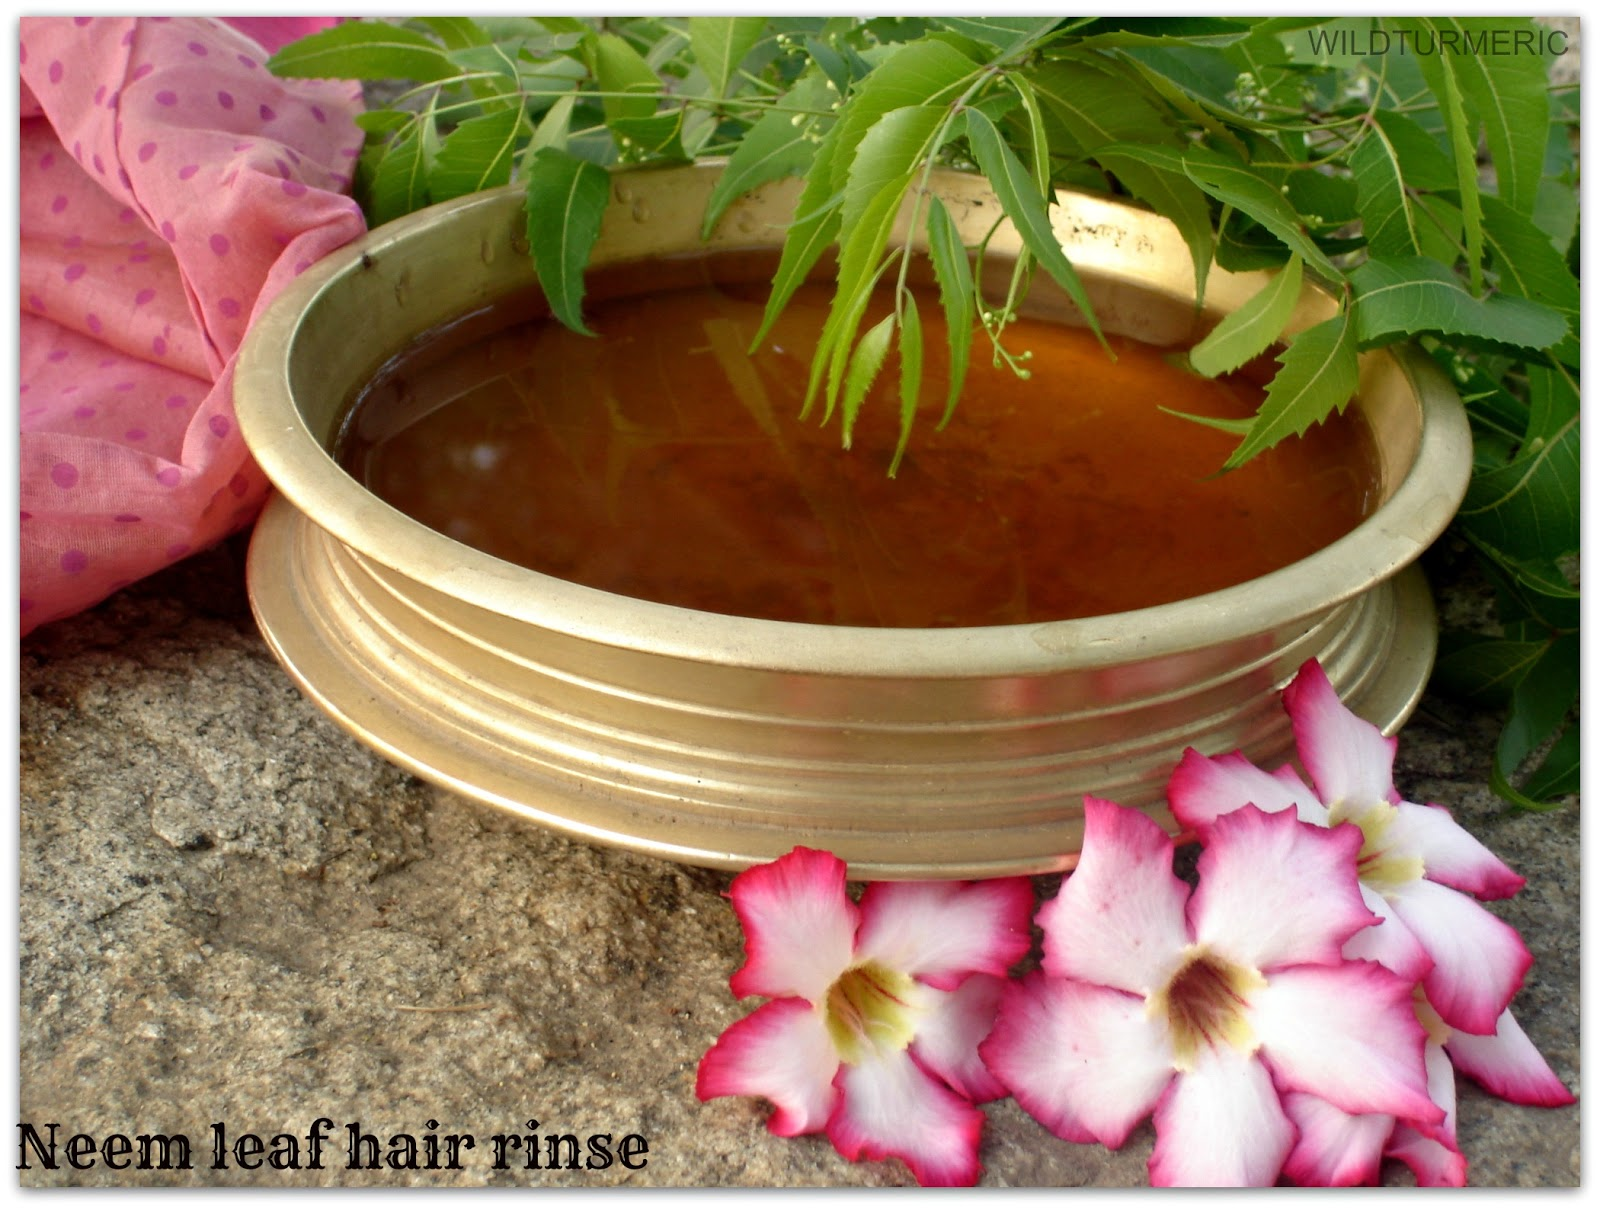 Benefits & Uses of Neem Leaves For Hair: Neem Leaf Hair Rinse